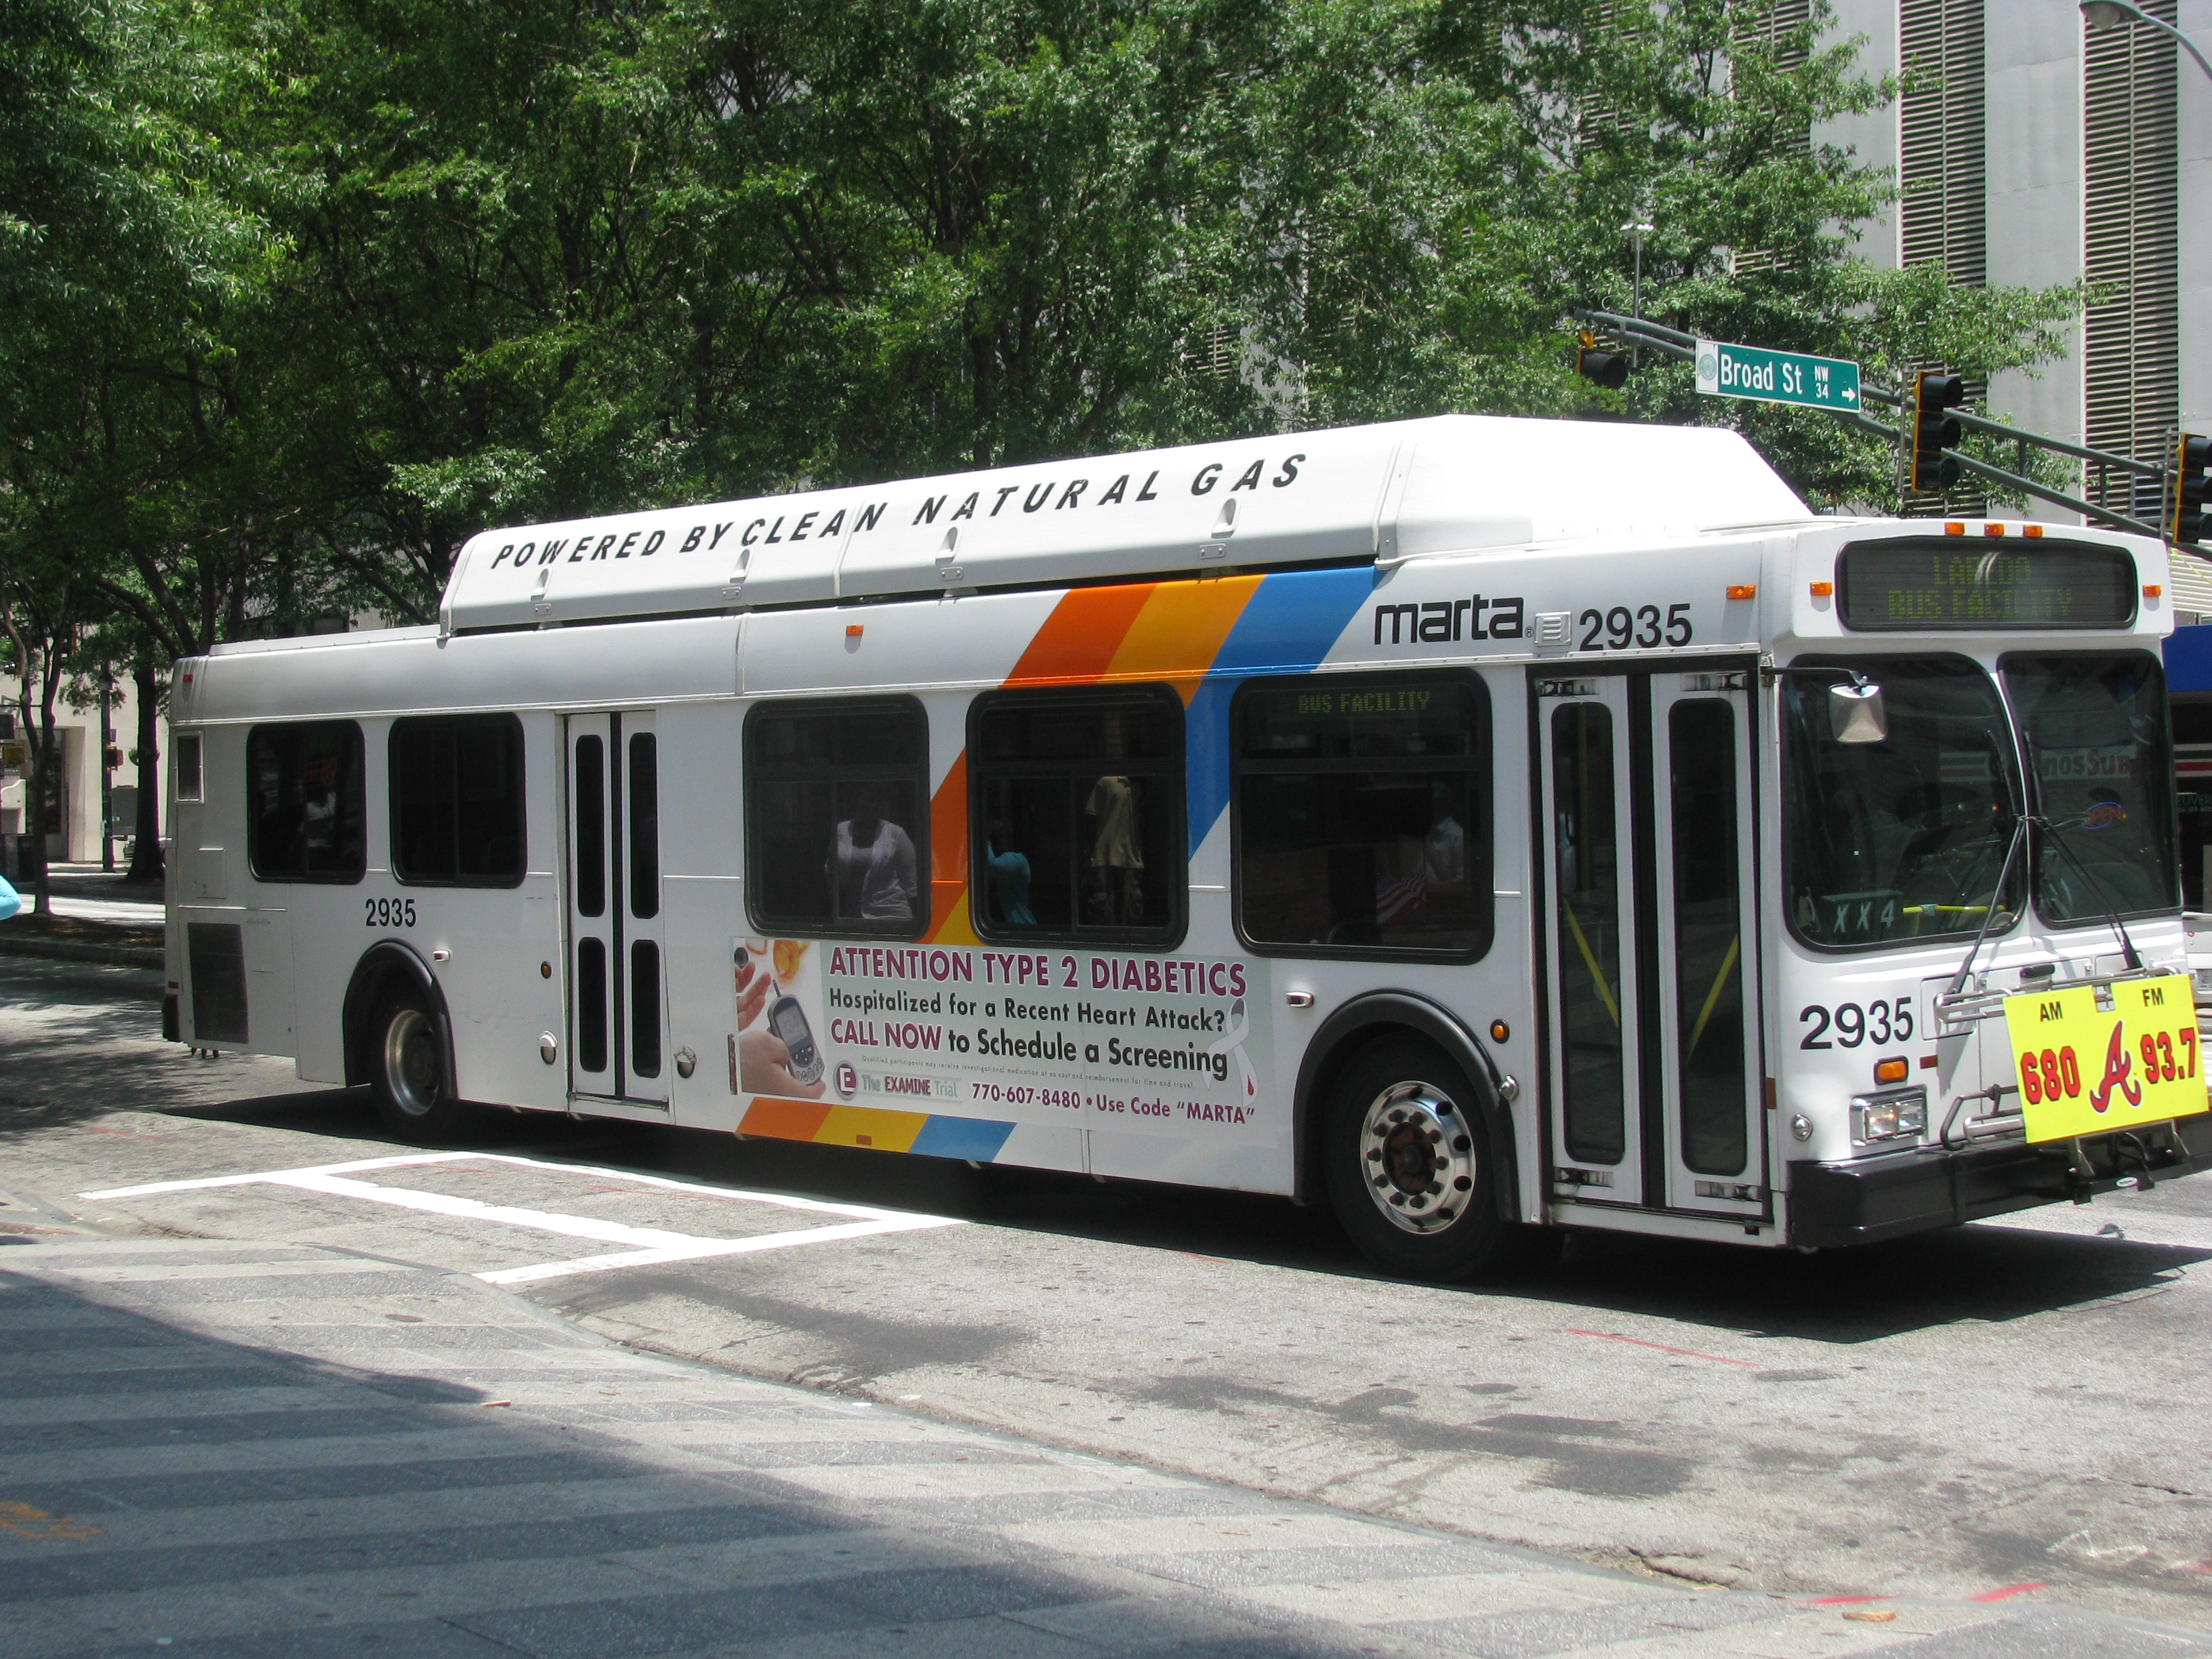 file:another 2001 c40lf - wikimedia commons